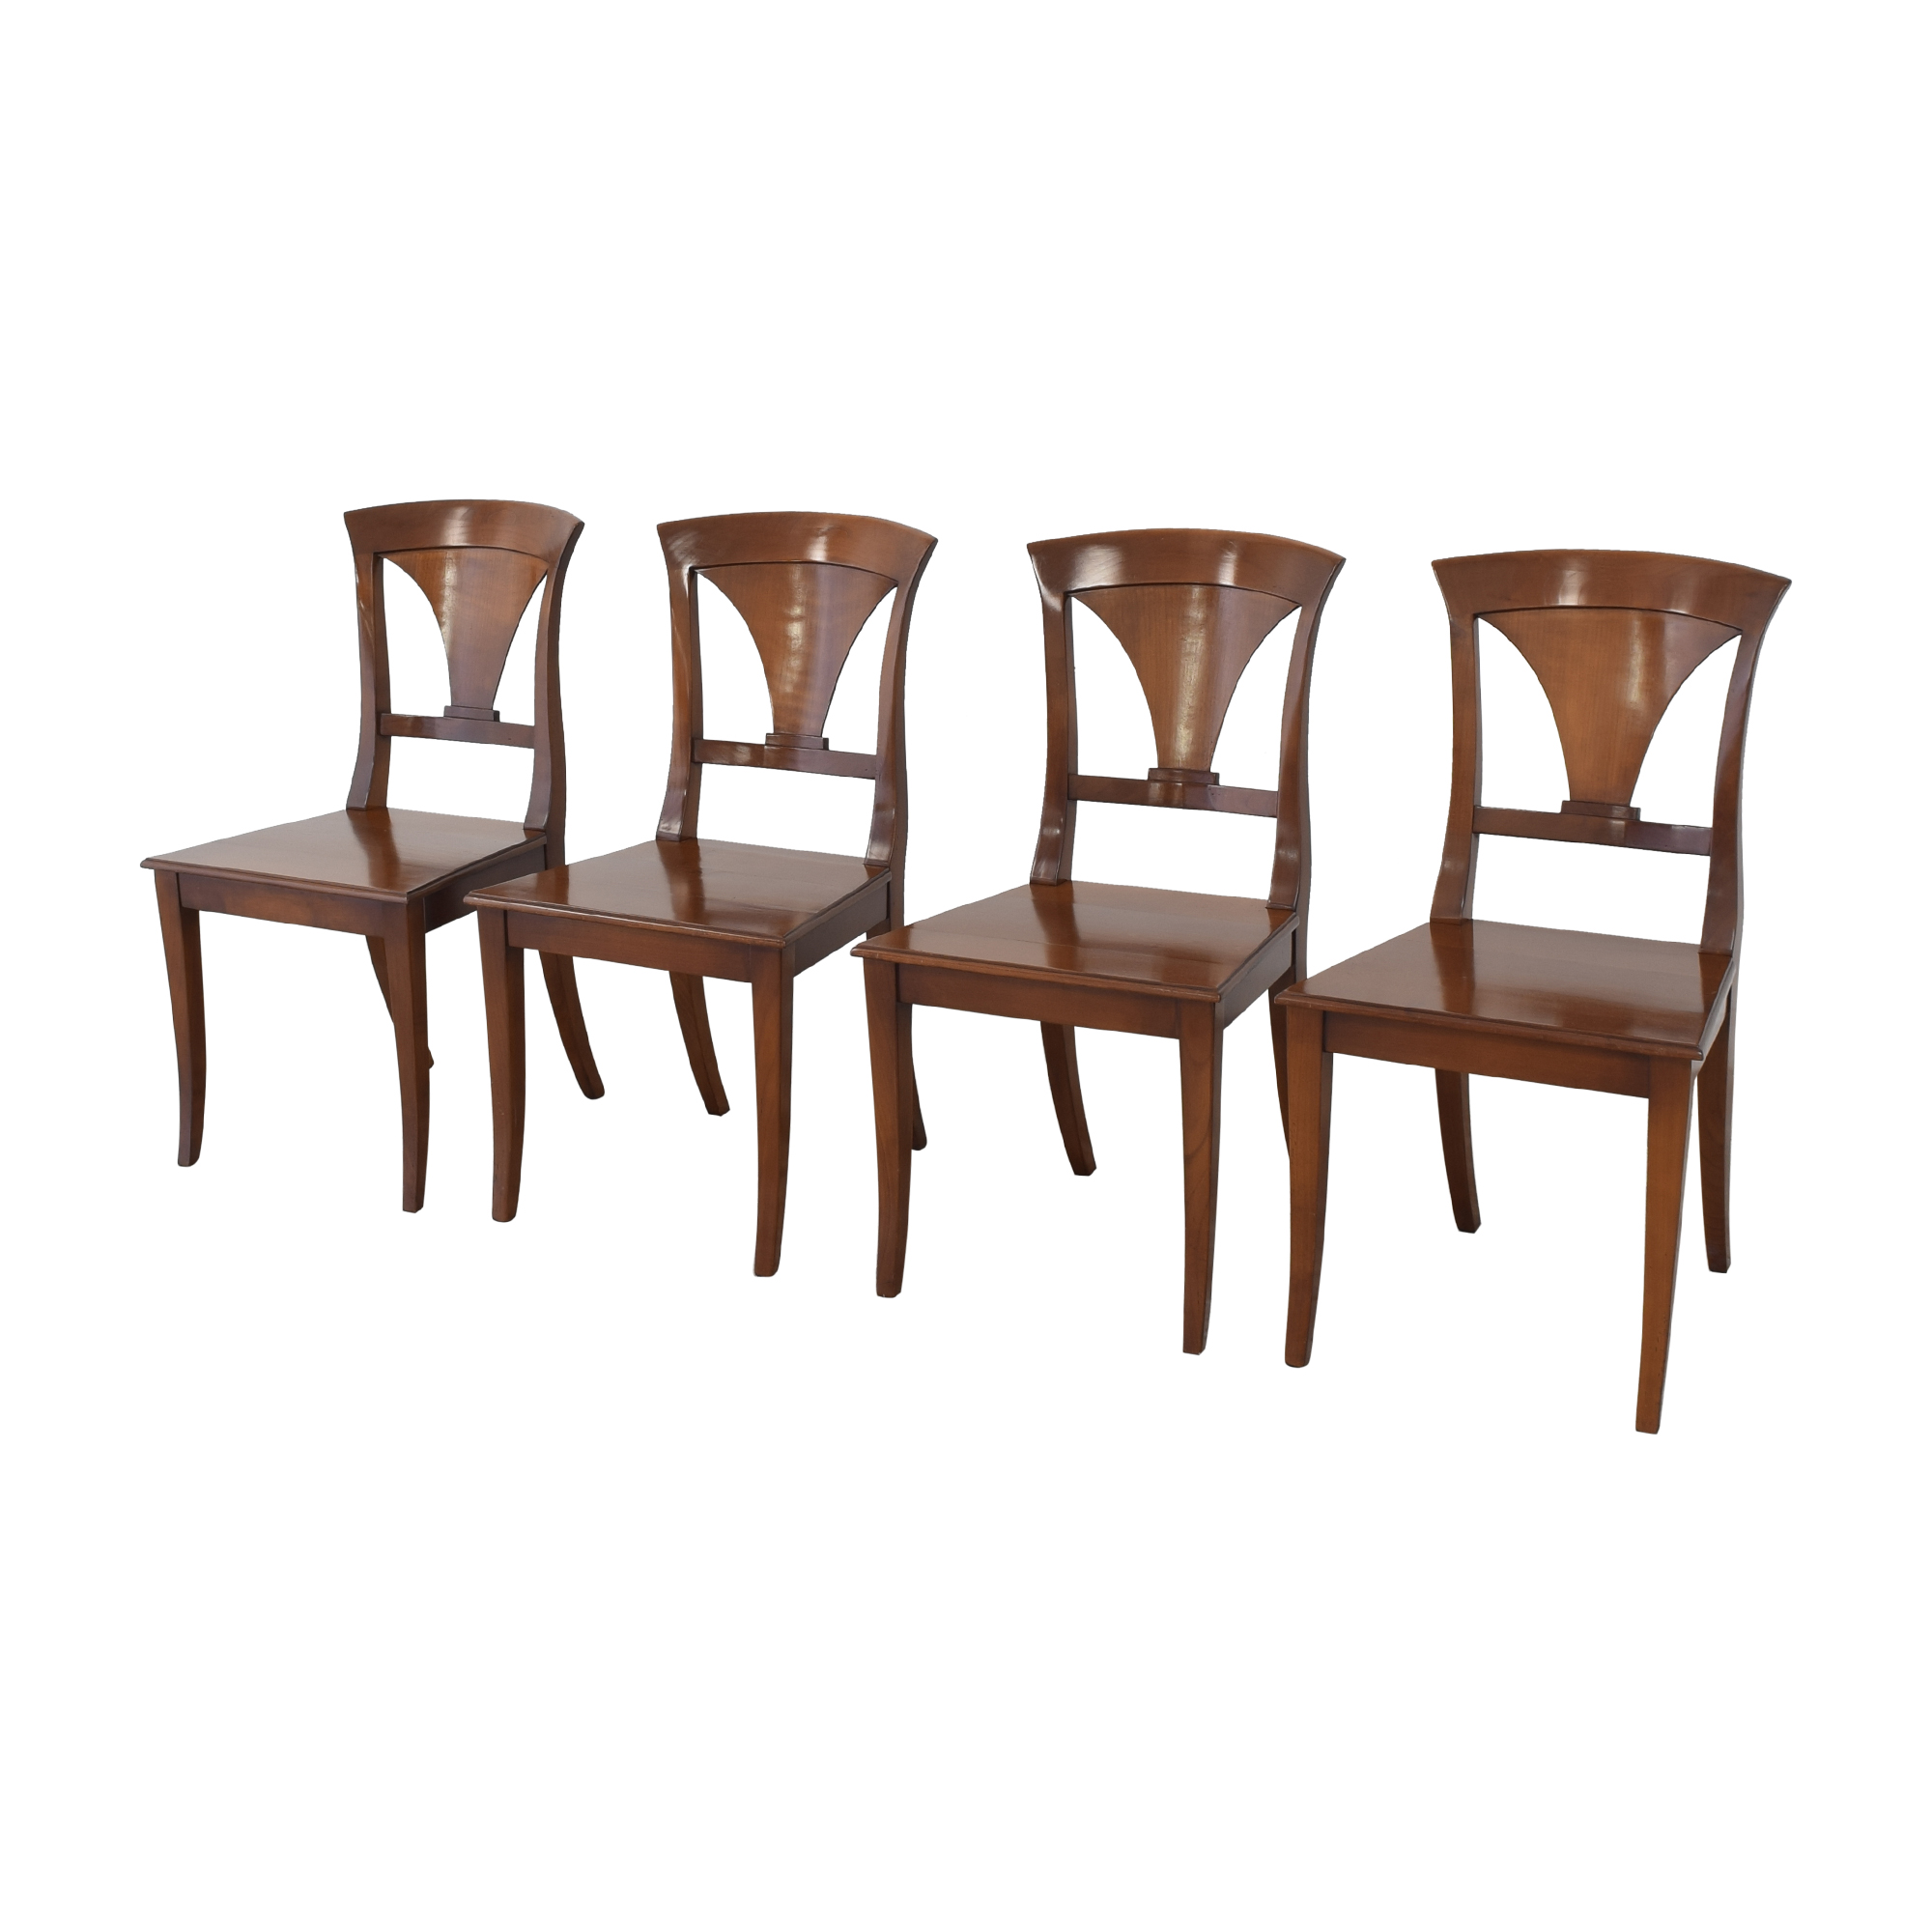 Pfister Pfister Swiss Style Dining Chairs Dining Chairs